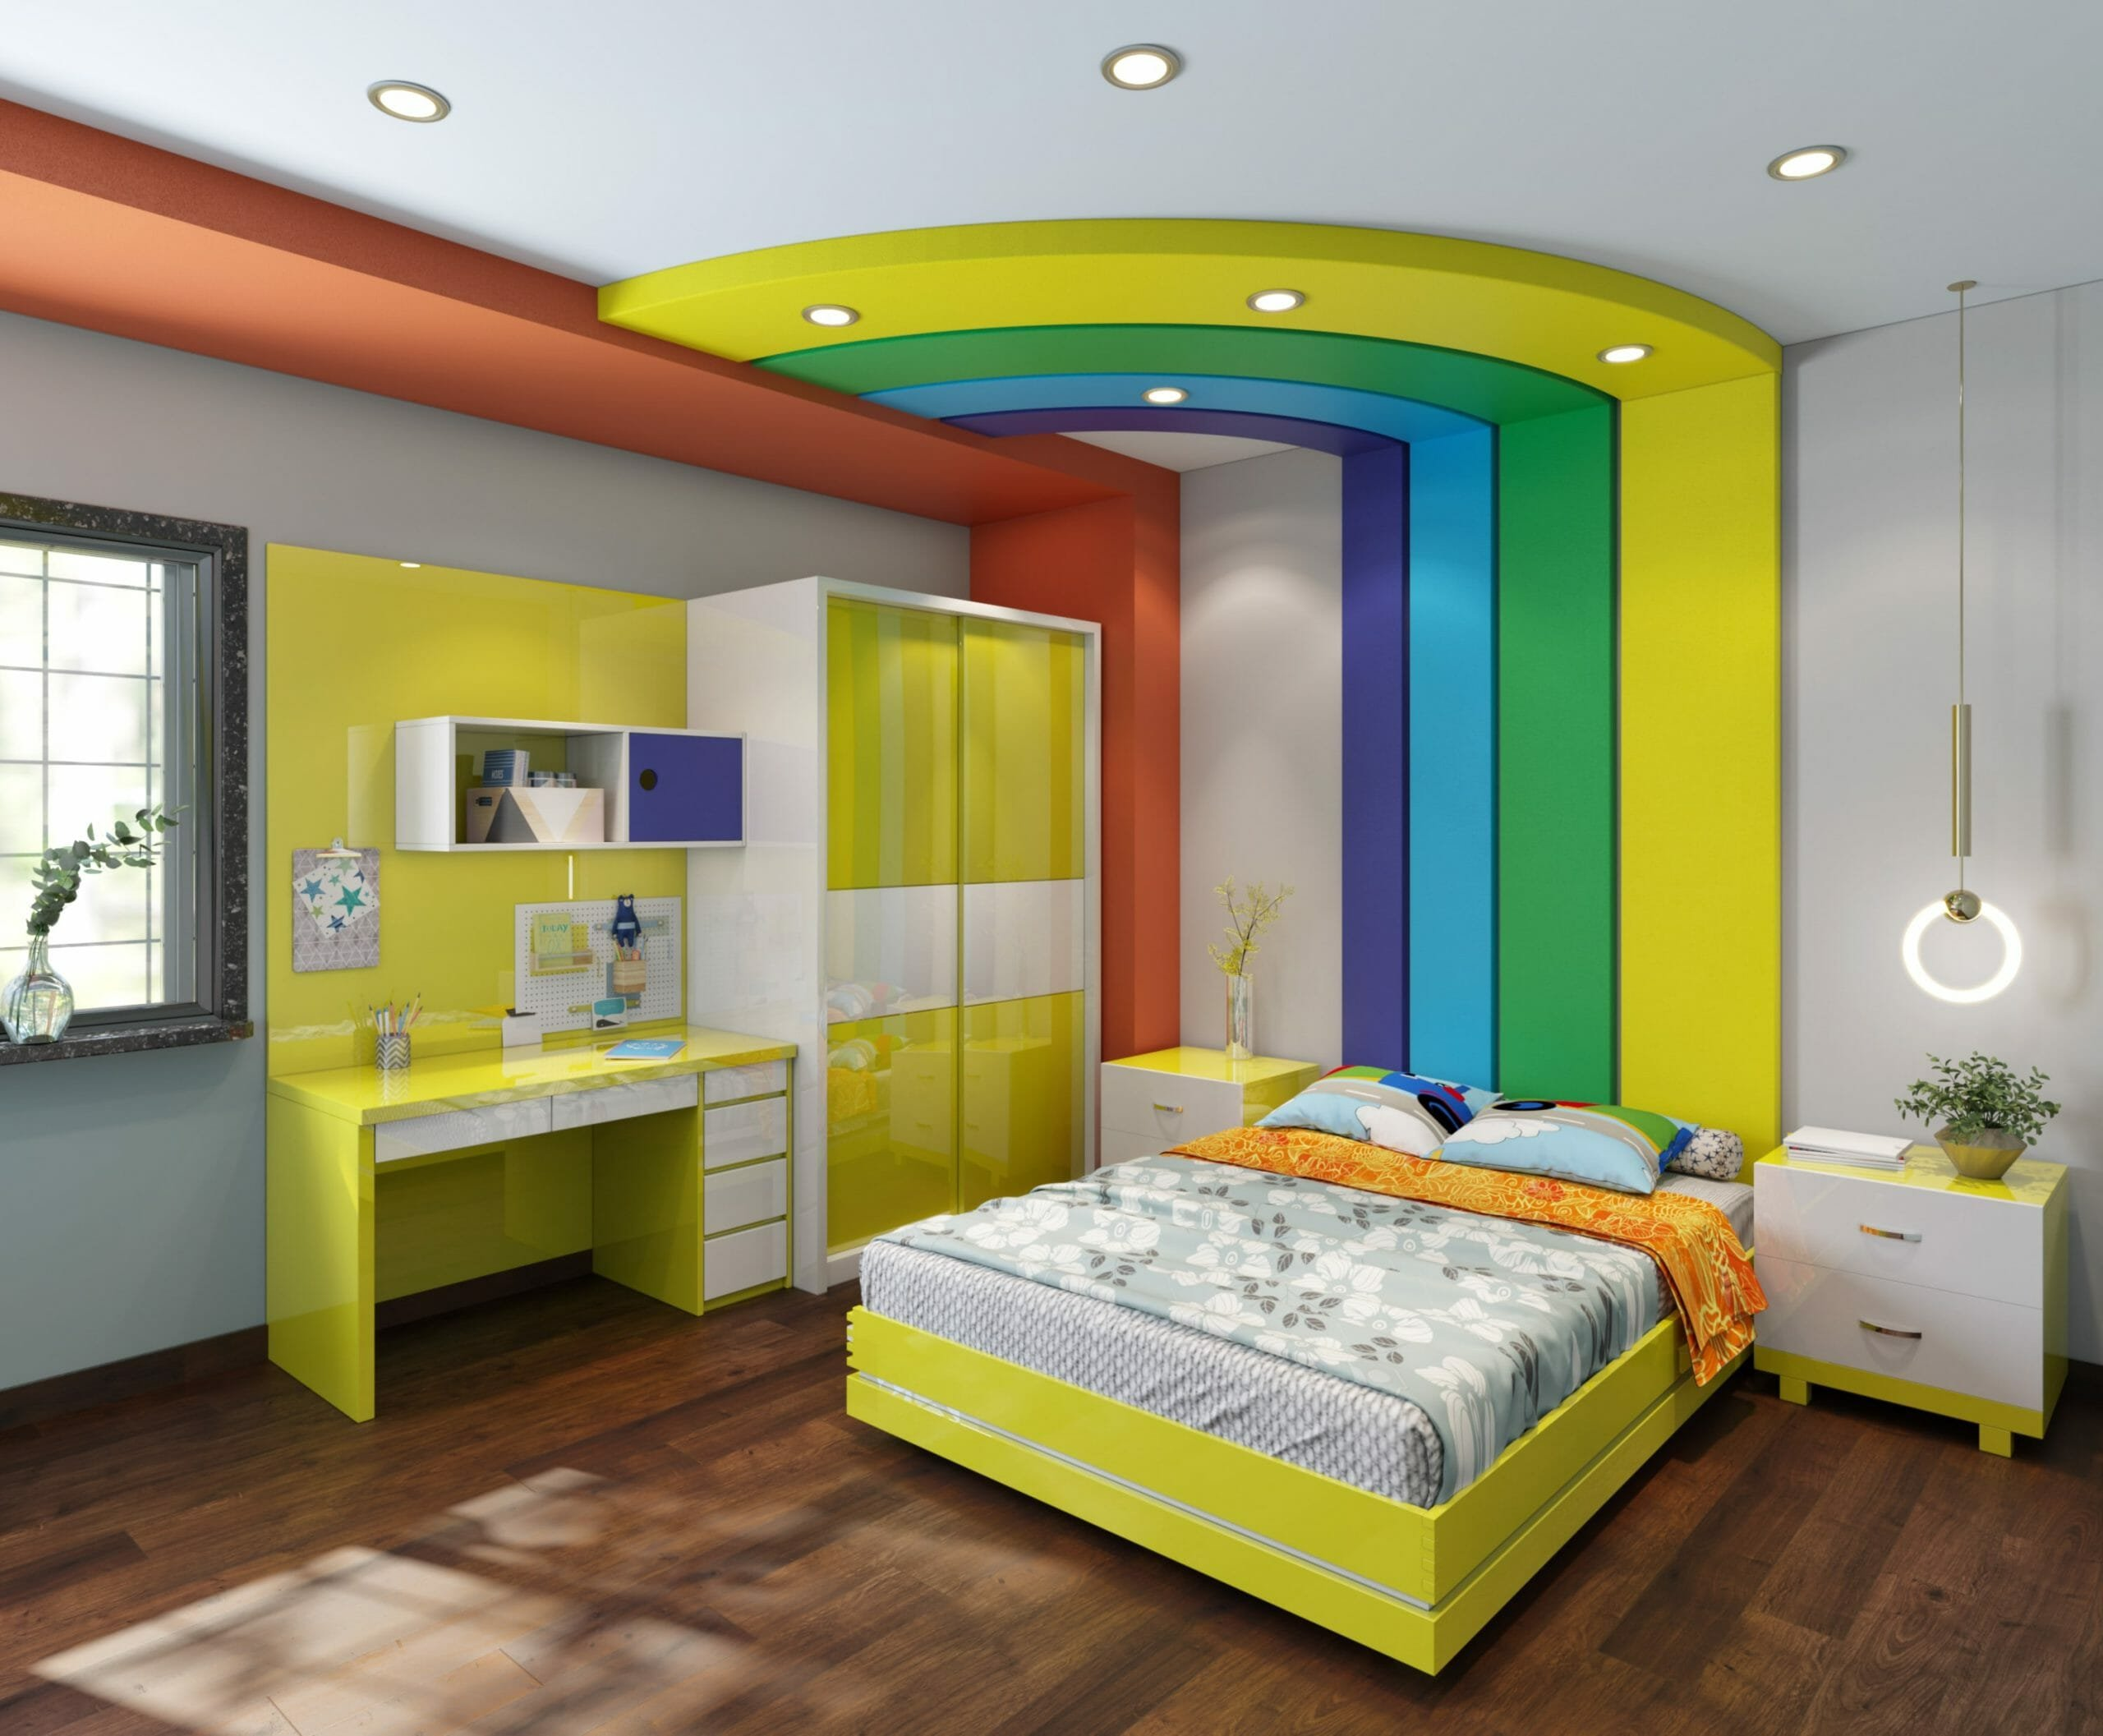 Colorful rainbow-themed kids room interior design